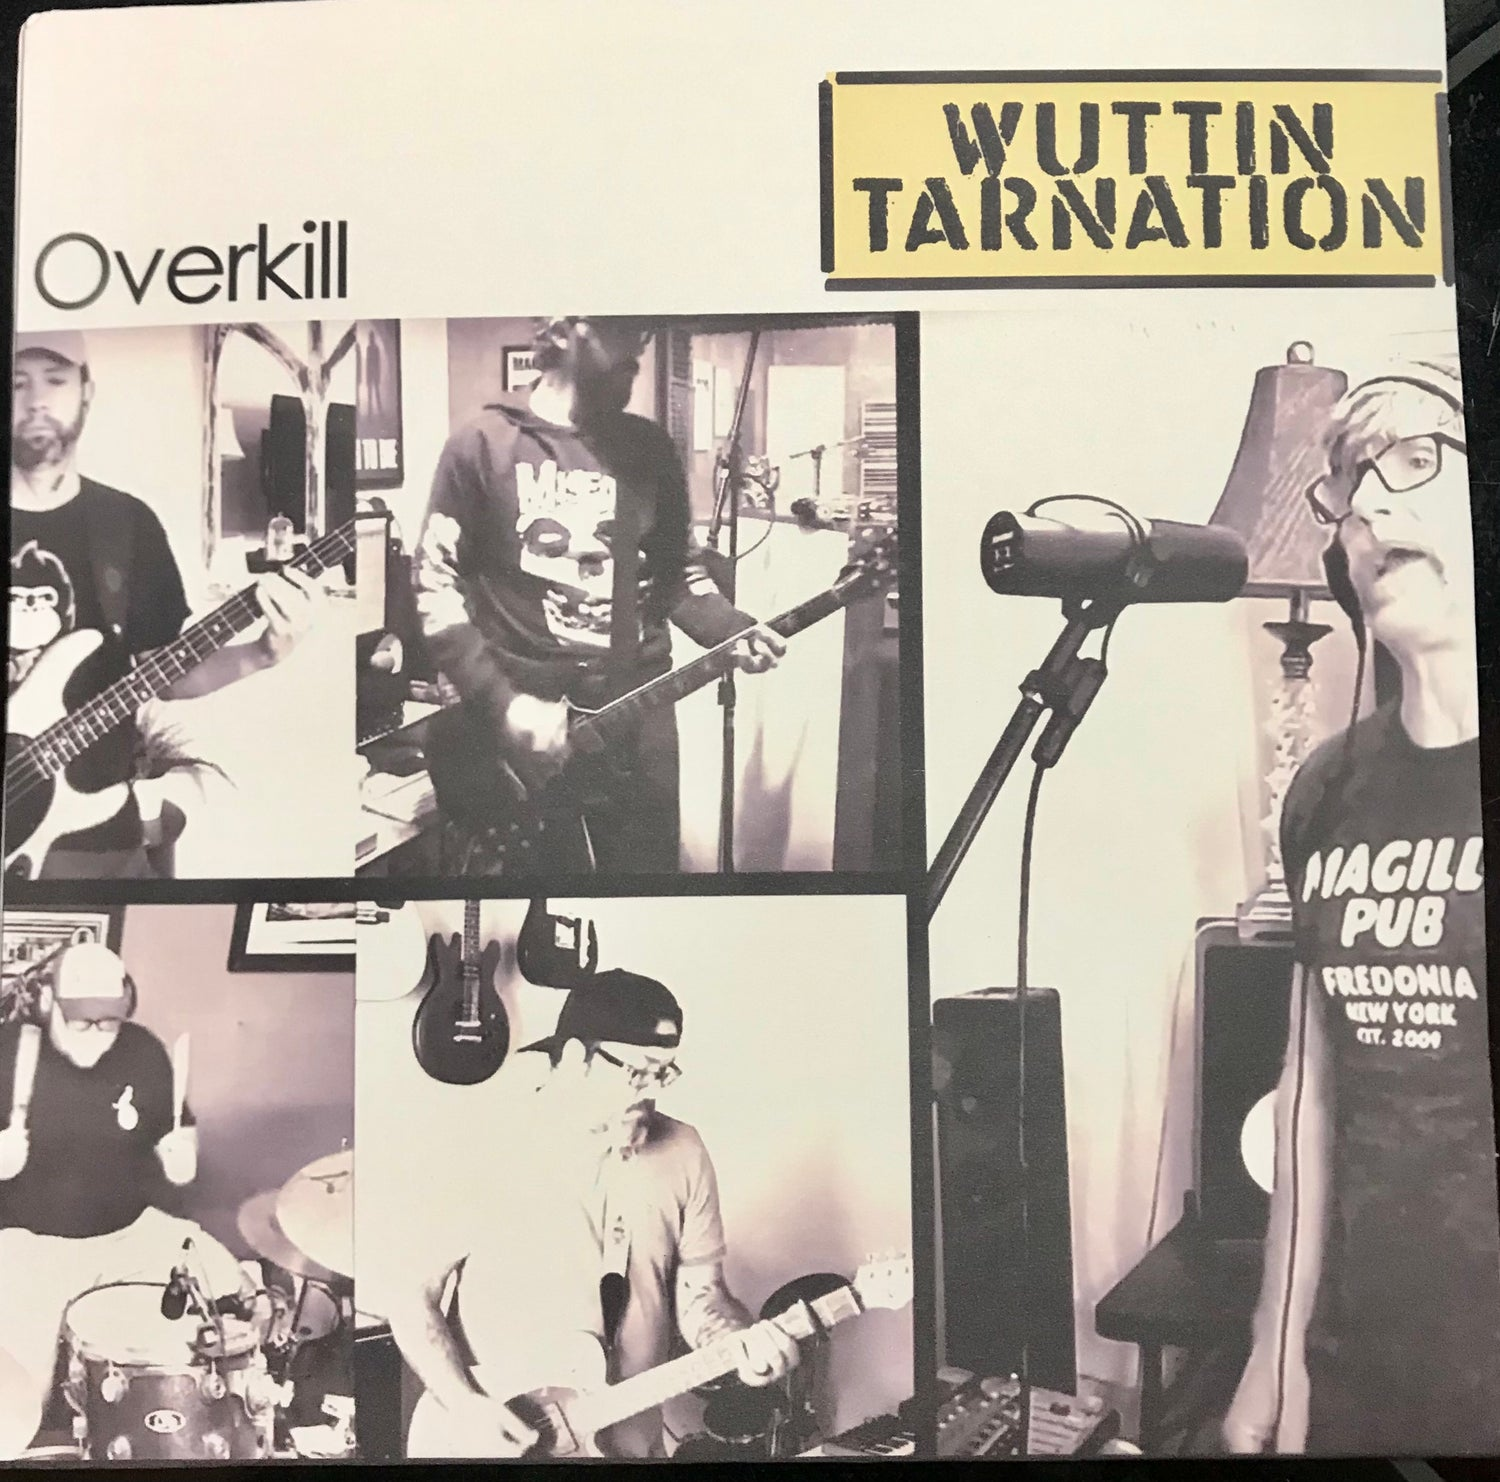 "Wuttin Tarnation 7"" Lathe Cut"